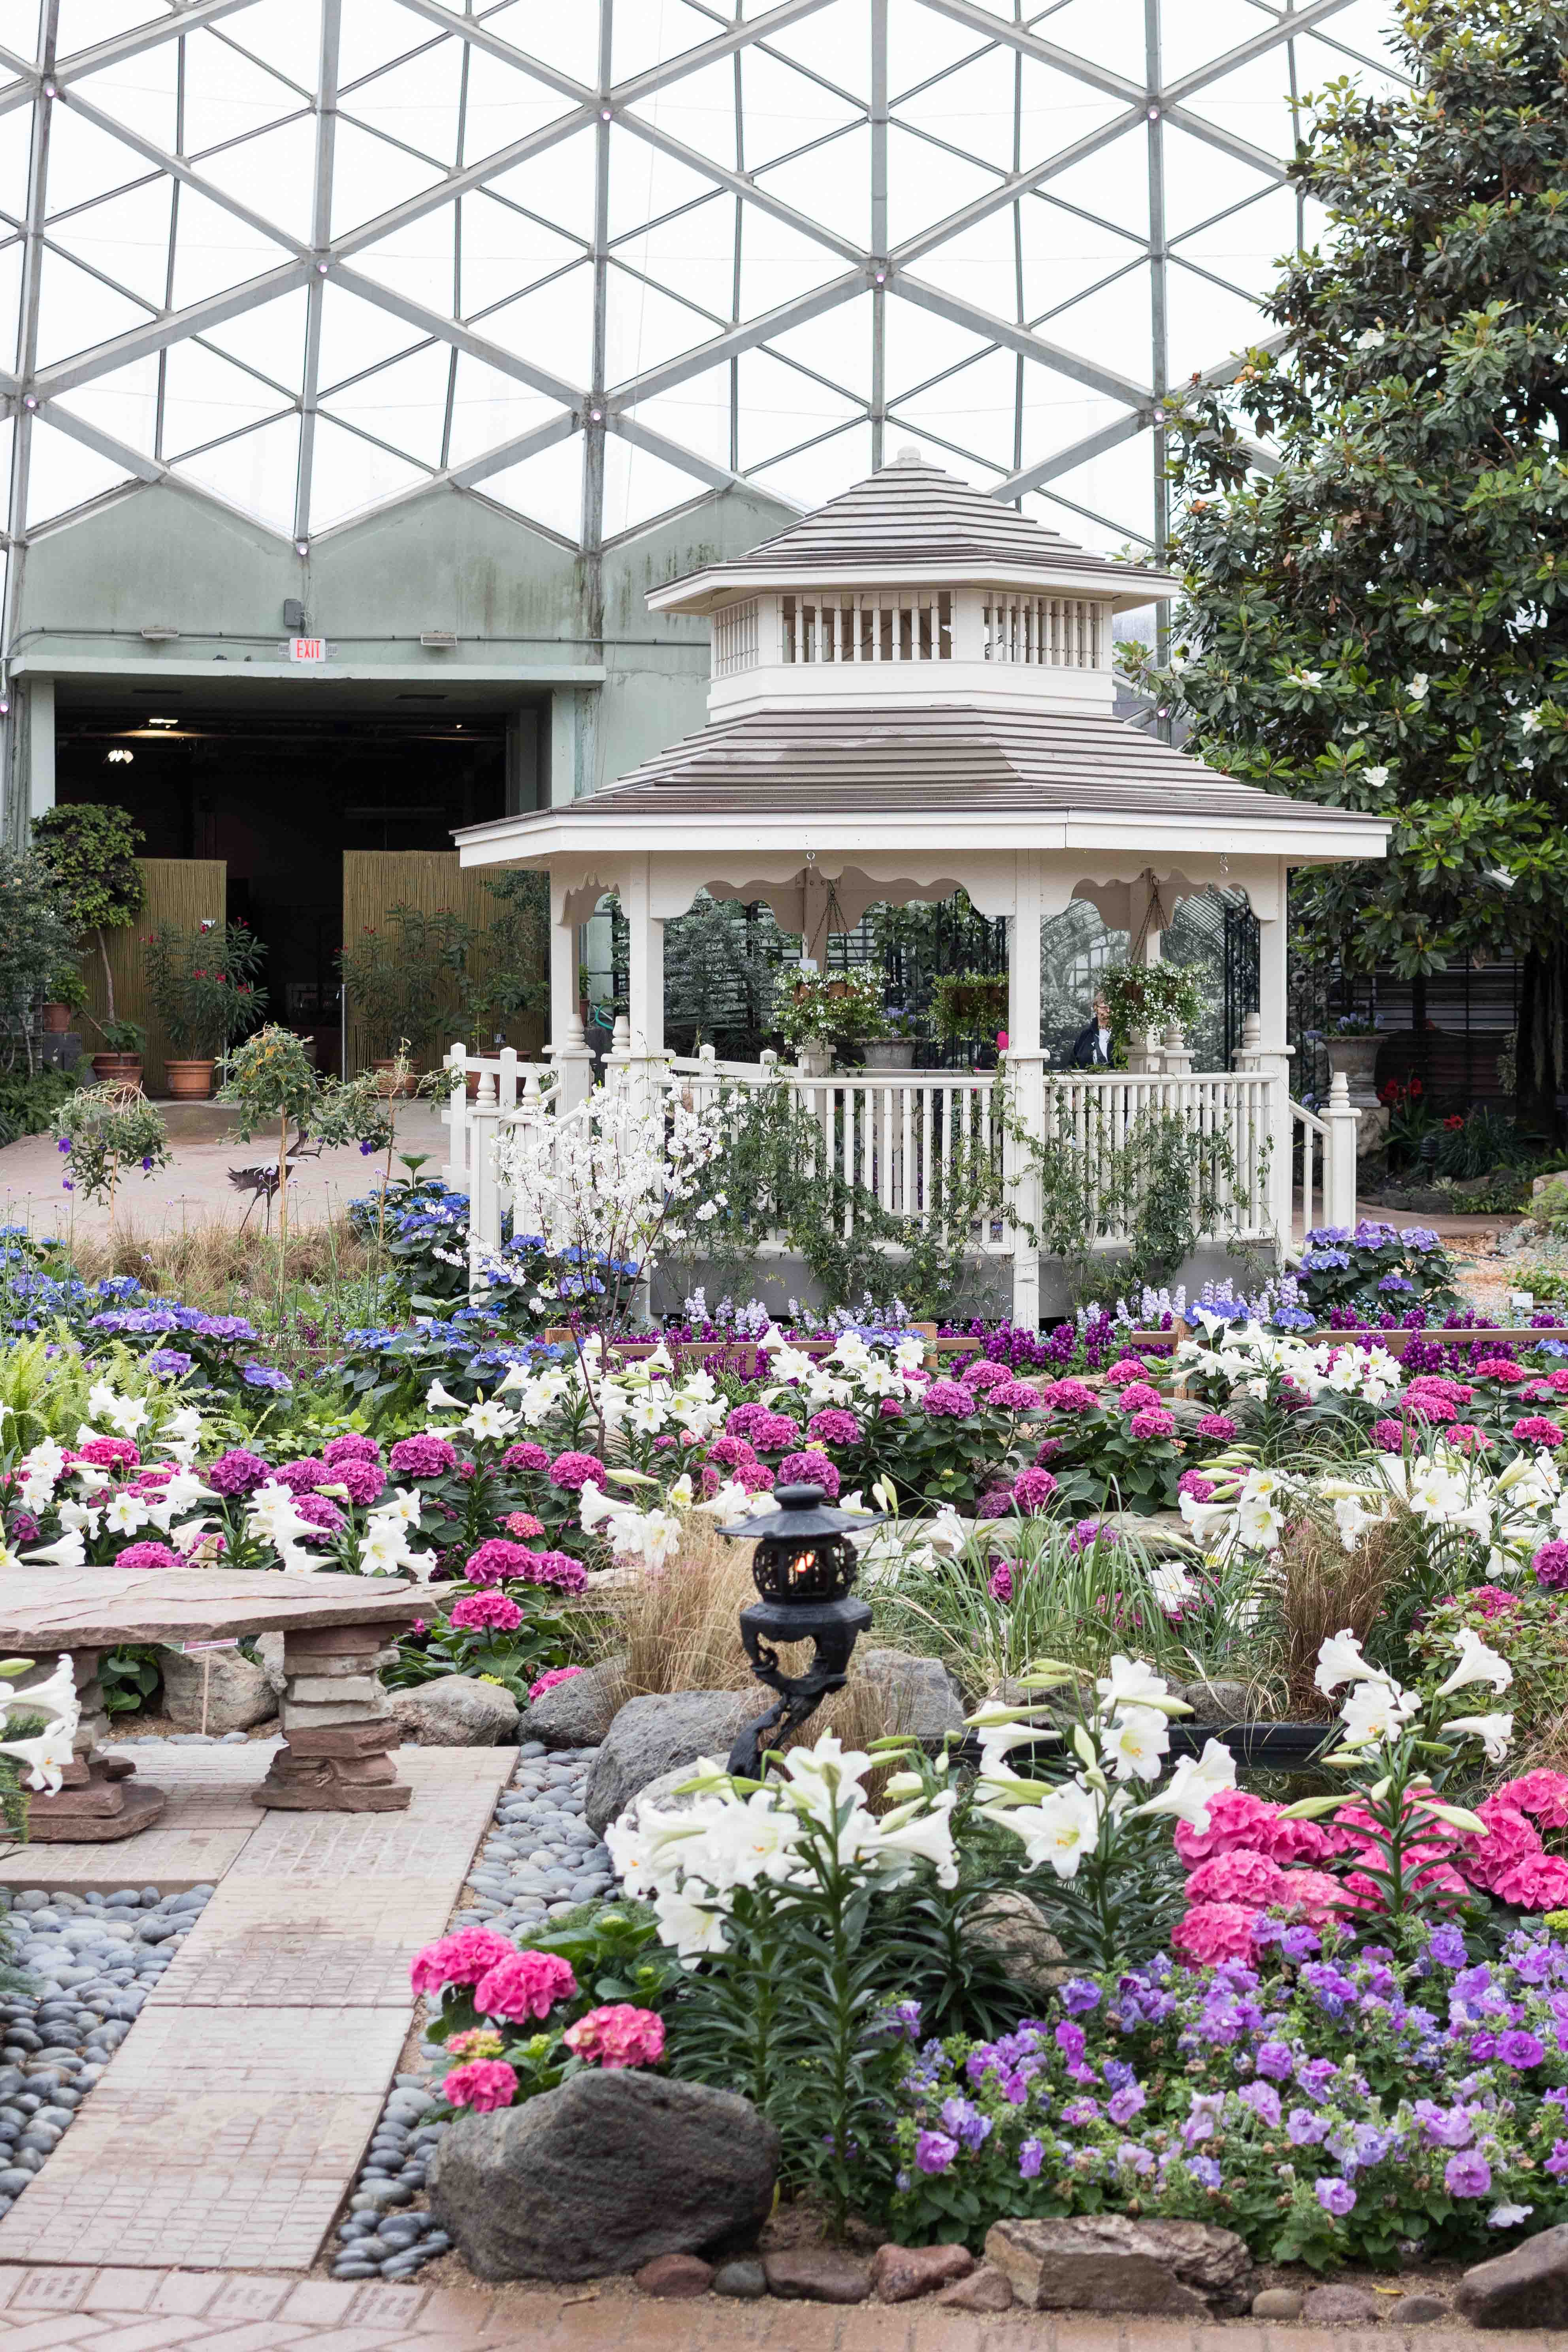 Japanese Zen Garden Spring Floral Show at the Mitchell Park Domes in Milwaukee, WI #Japanesezengarden #floralshow #MitchellParkDomes | https://www.roseclearfield.com